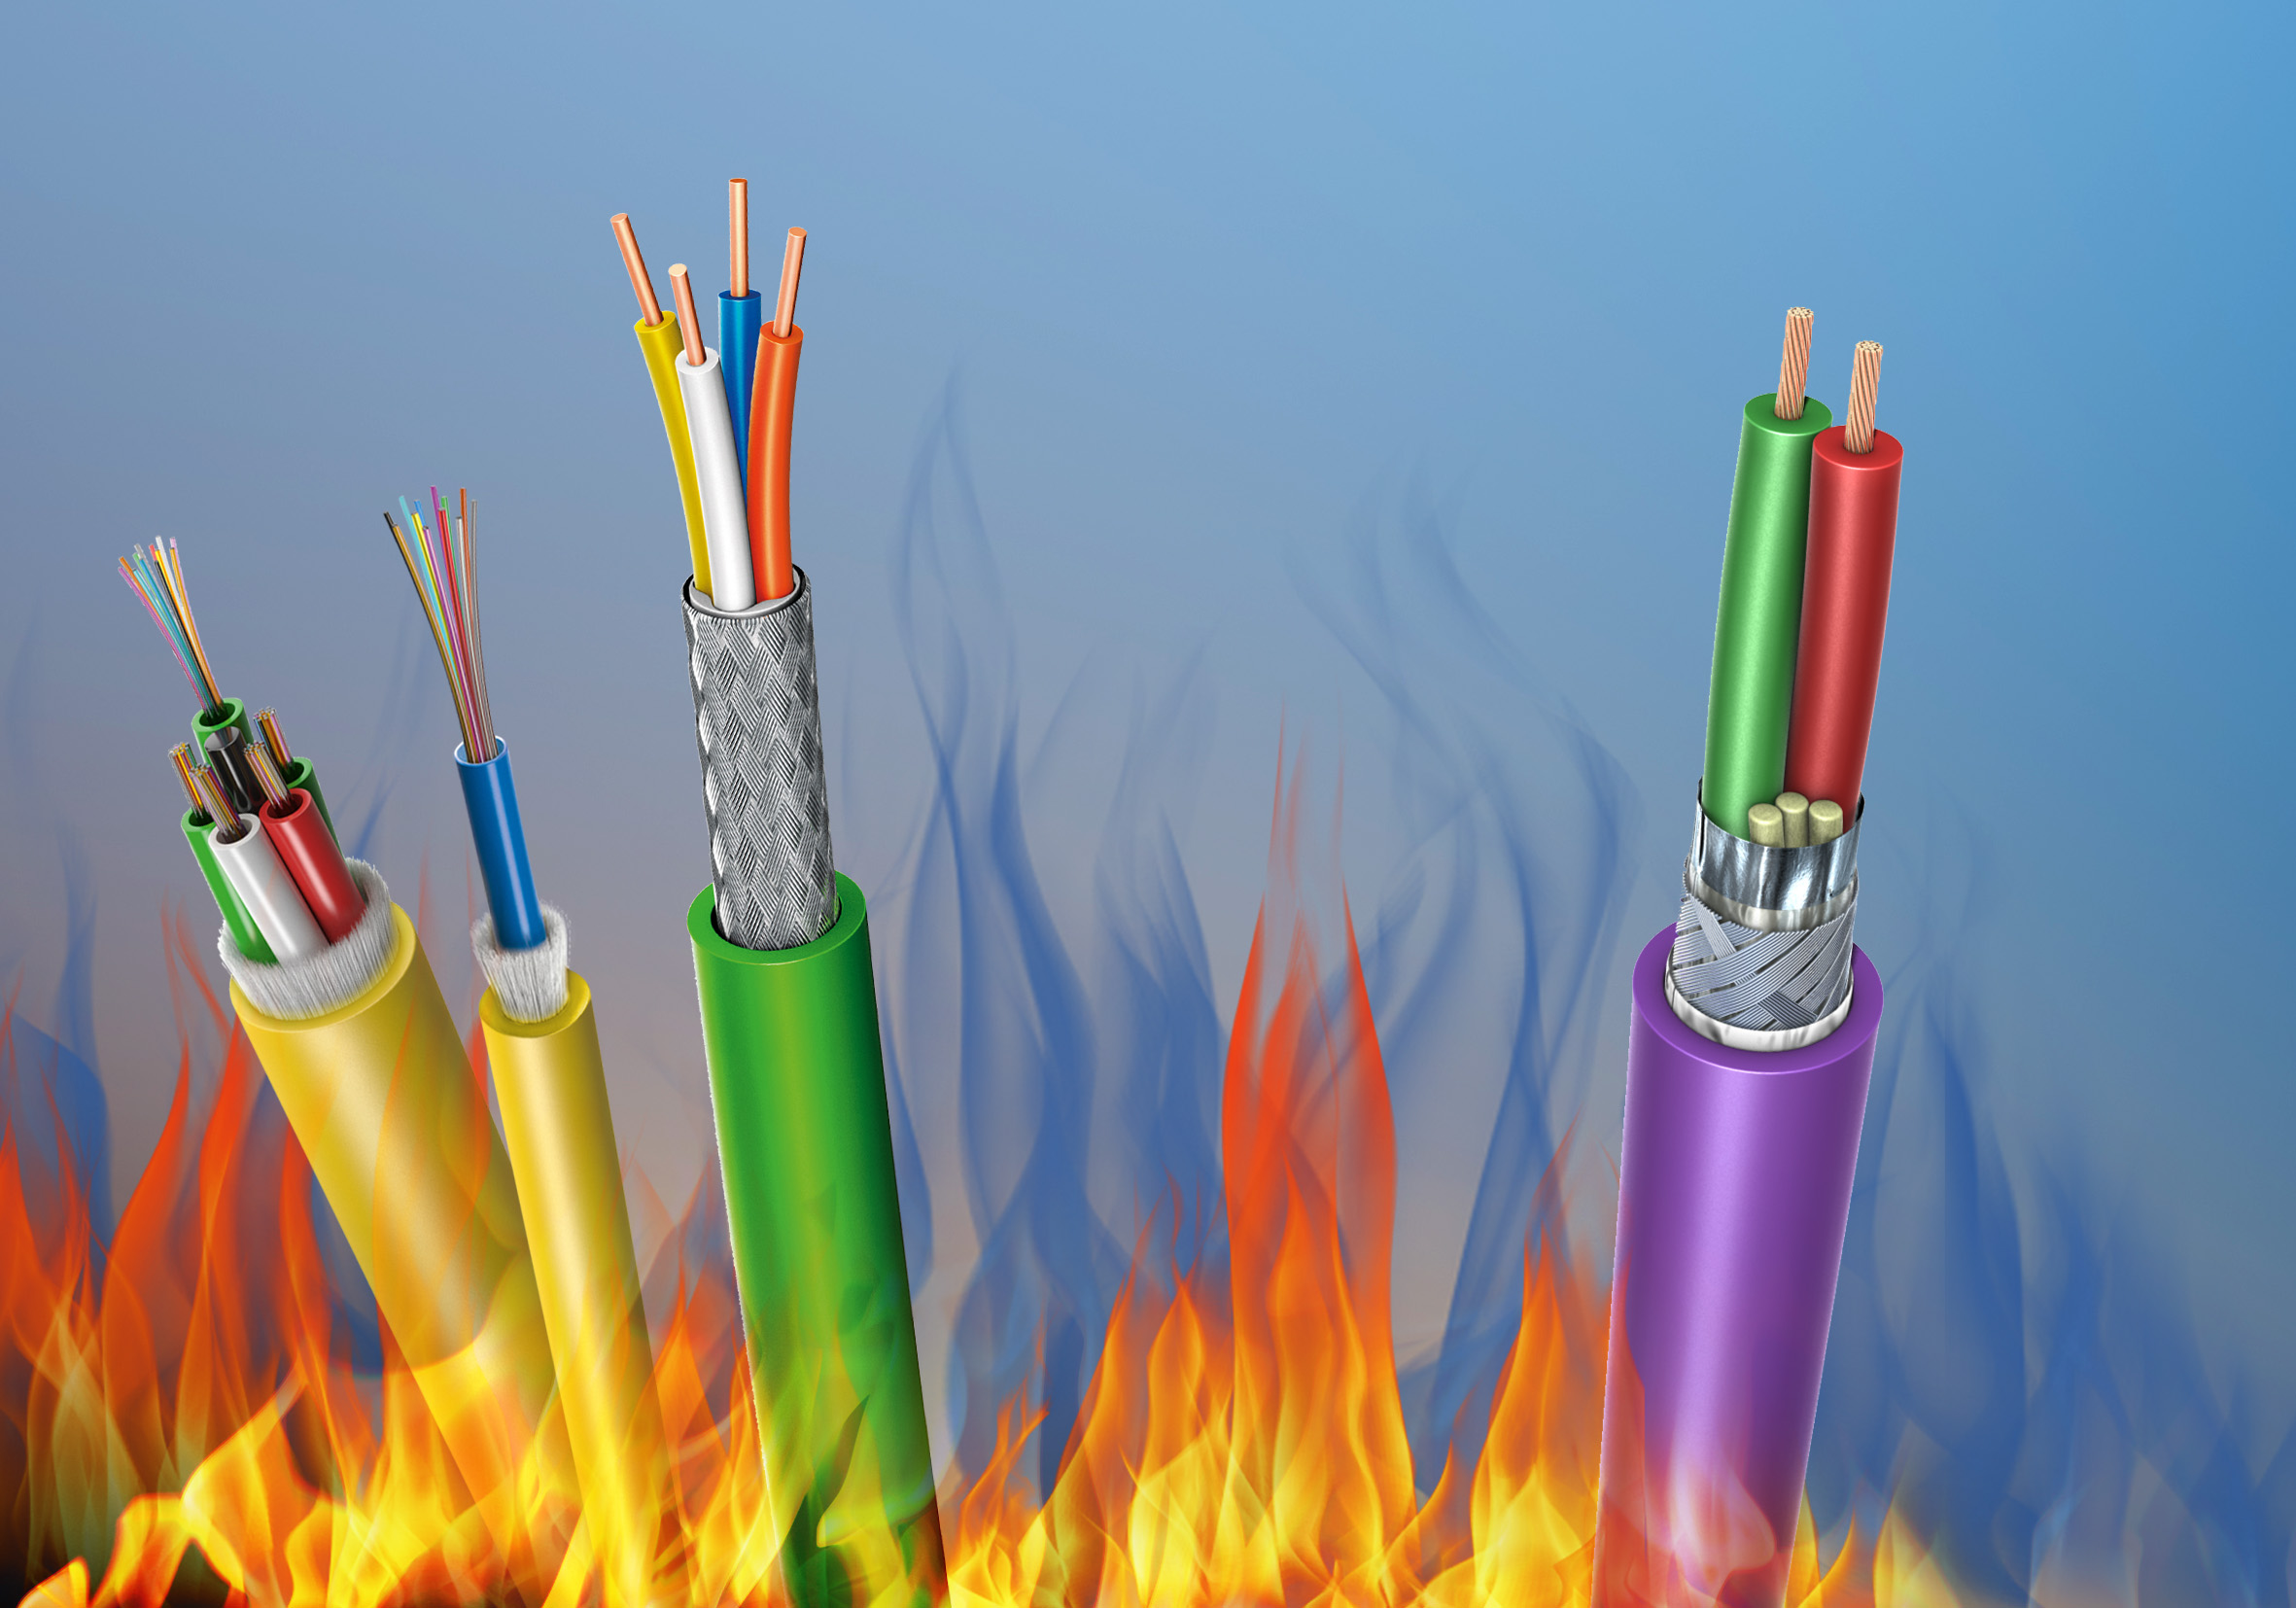 Leoni unveils fire-retardant cables that significantly